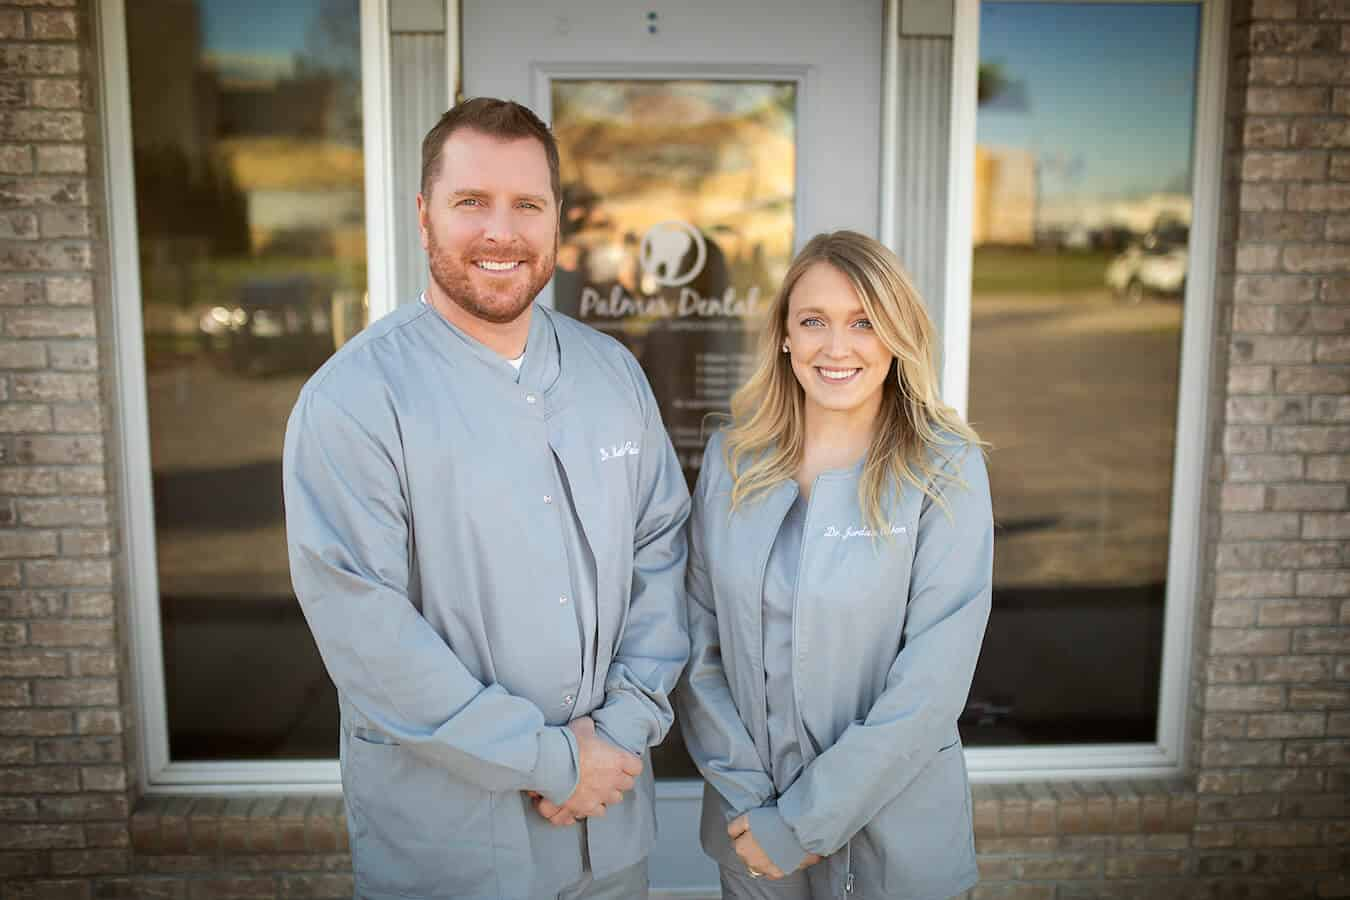 Dr. Palmer and Dr. Olson of Palmer Dental